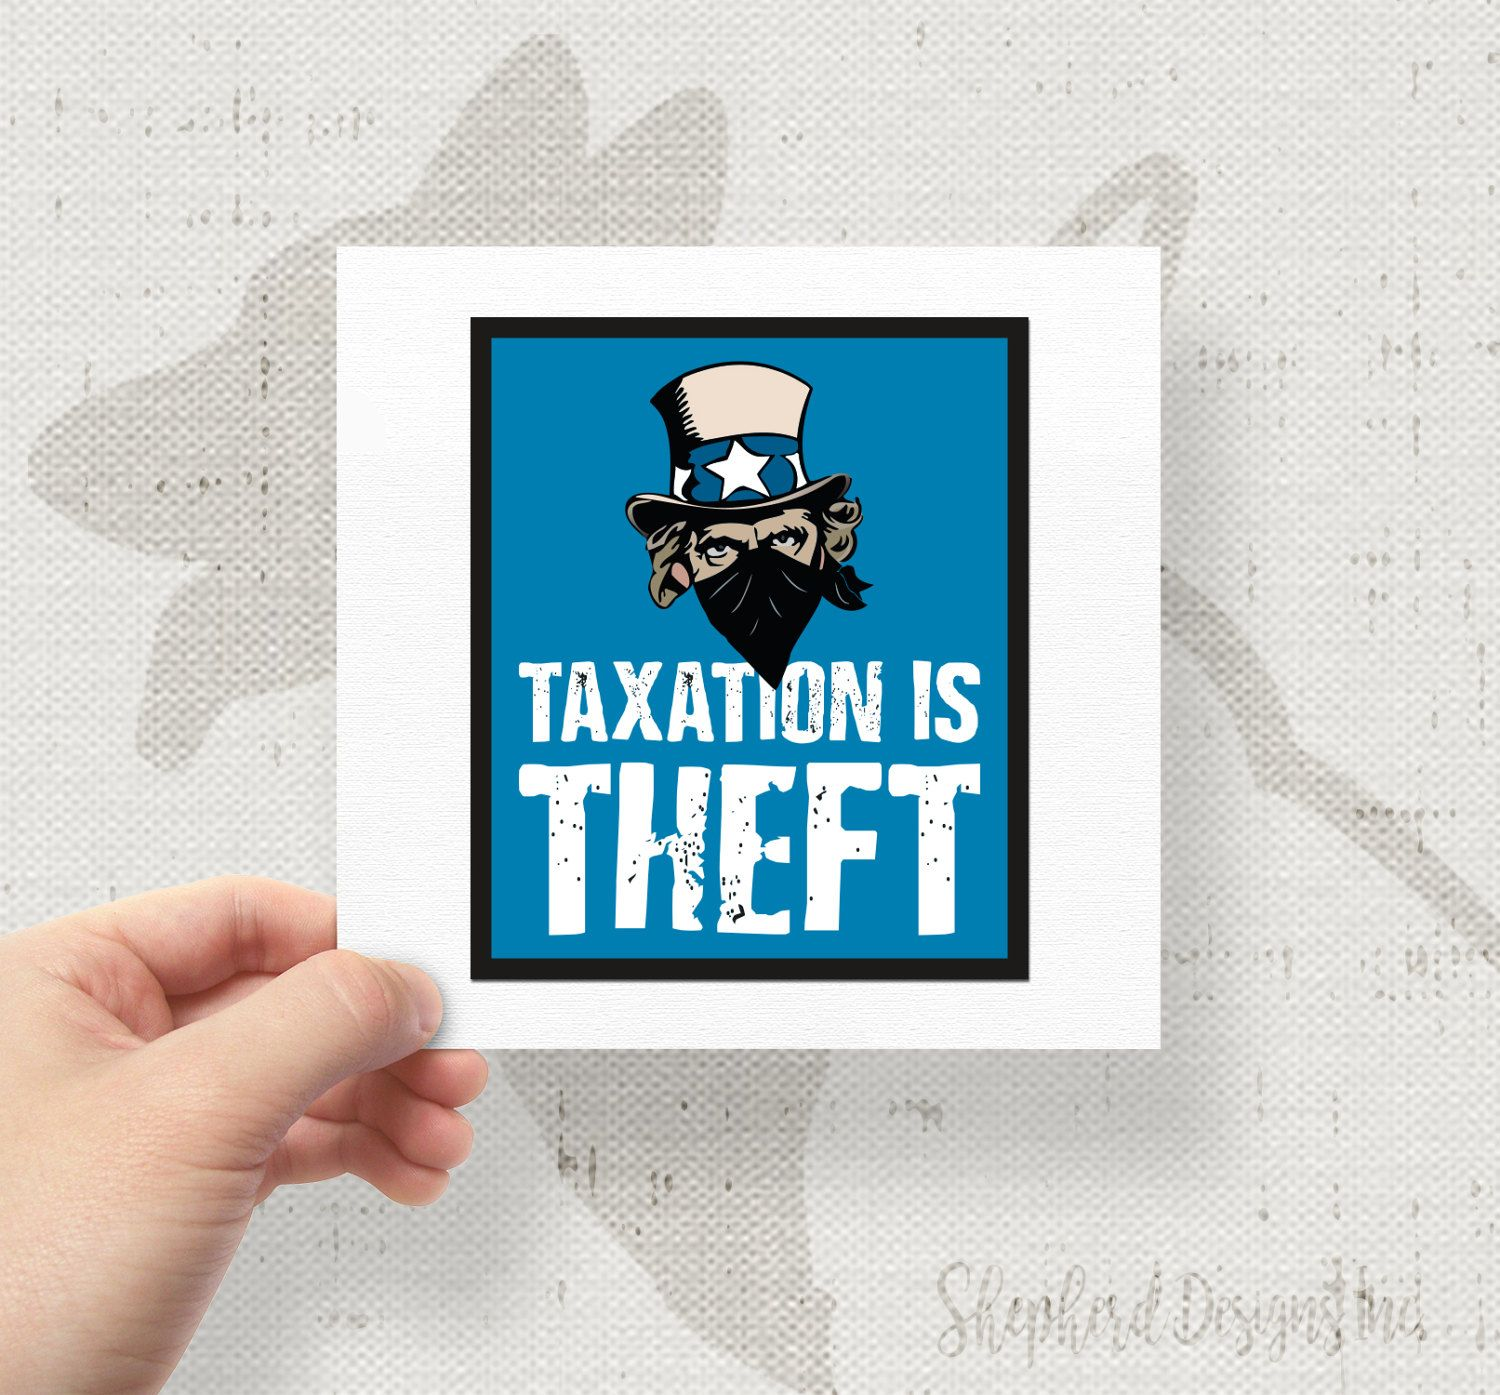 Taxation Is Theft Uncle Sam Bandit Robber X Bumper Sticker - Custom decal stickersfml design custom decalsstickers funny stickers custom